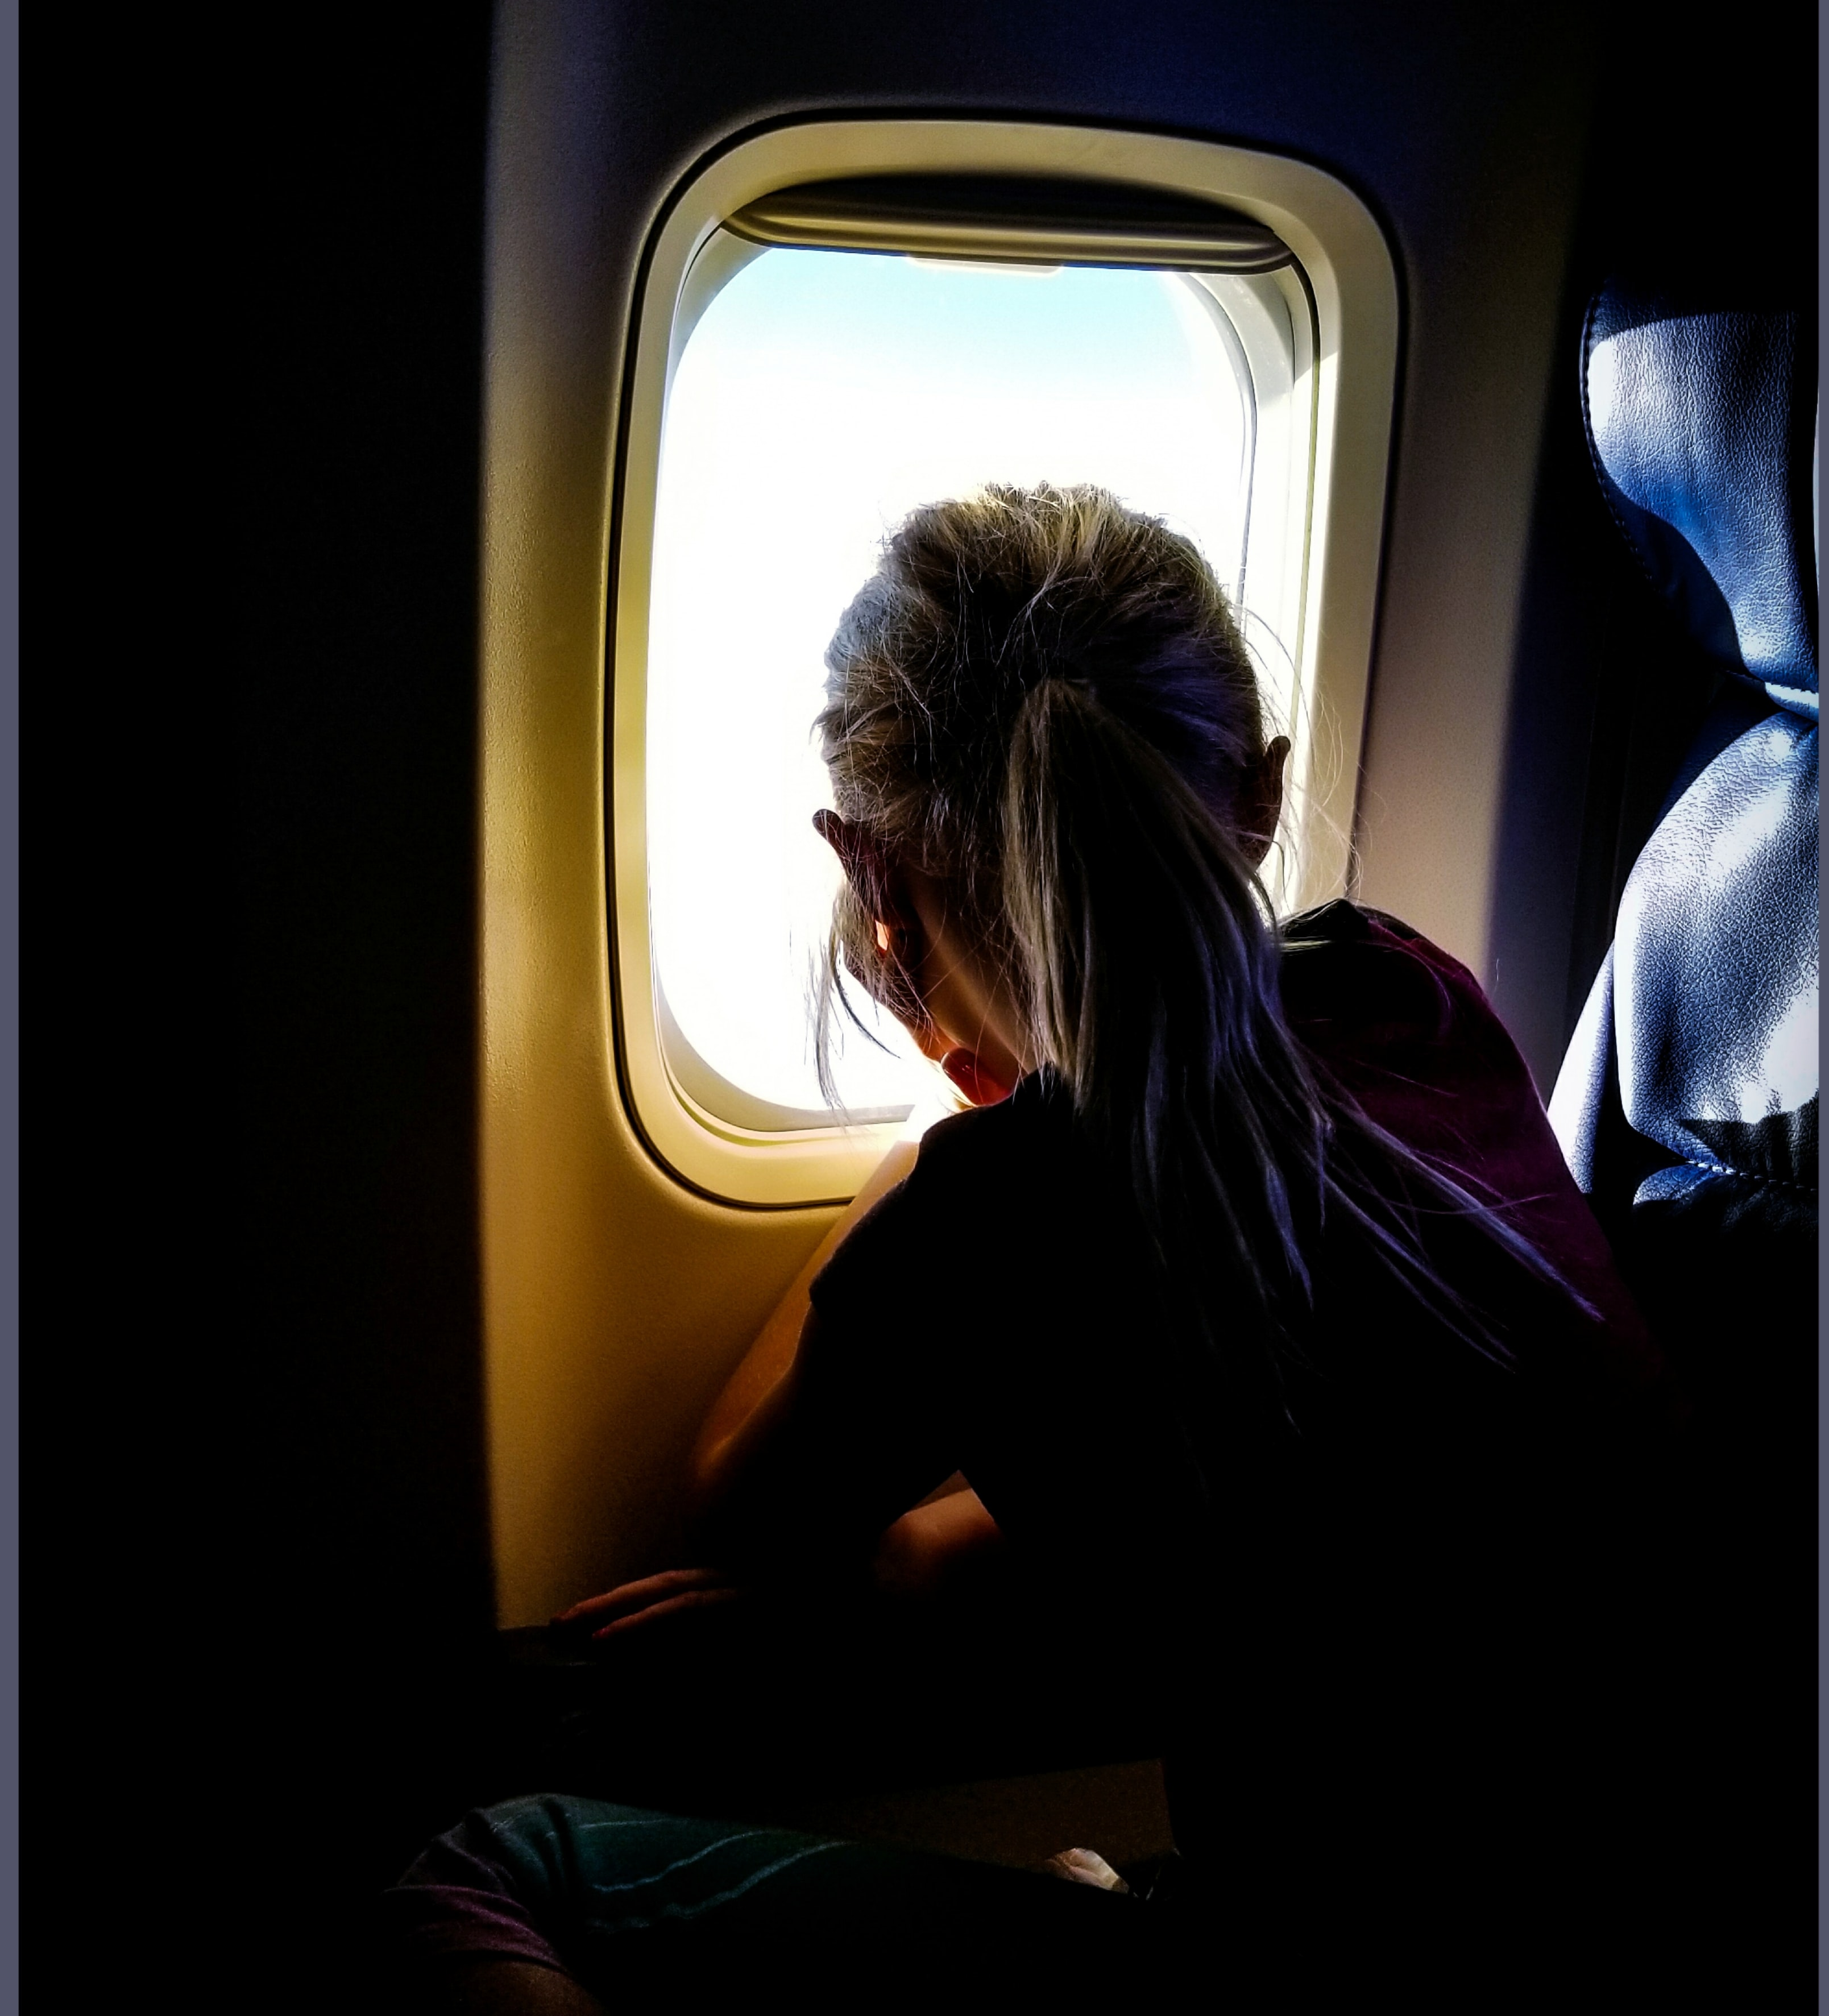 woman sitting on plane while looking at the window